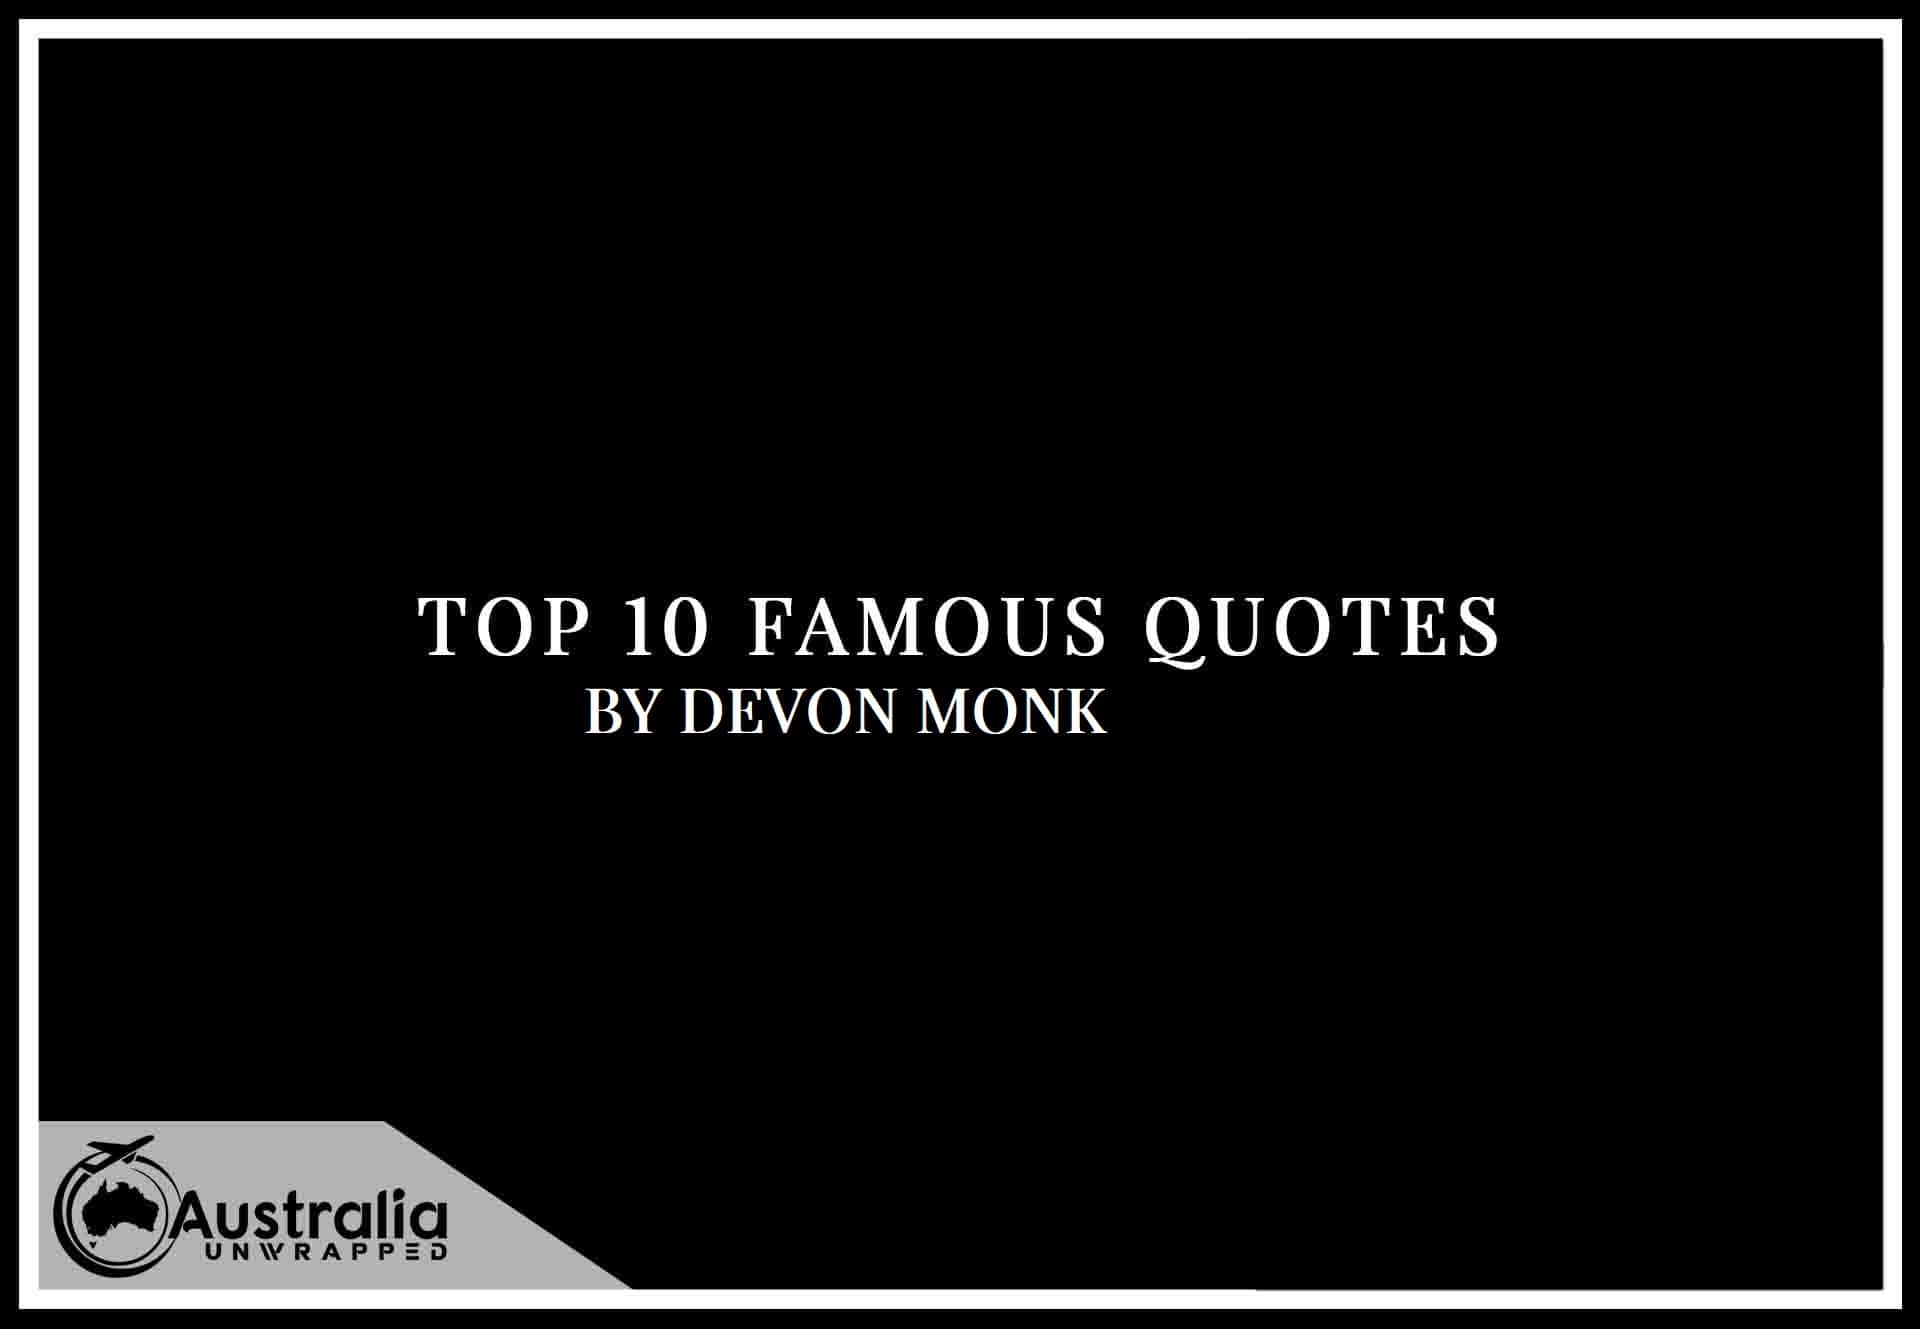 Devon Monk's Top 10 Popular and Famous Quotes